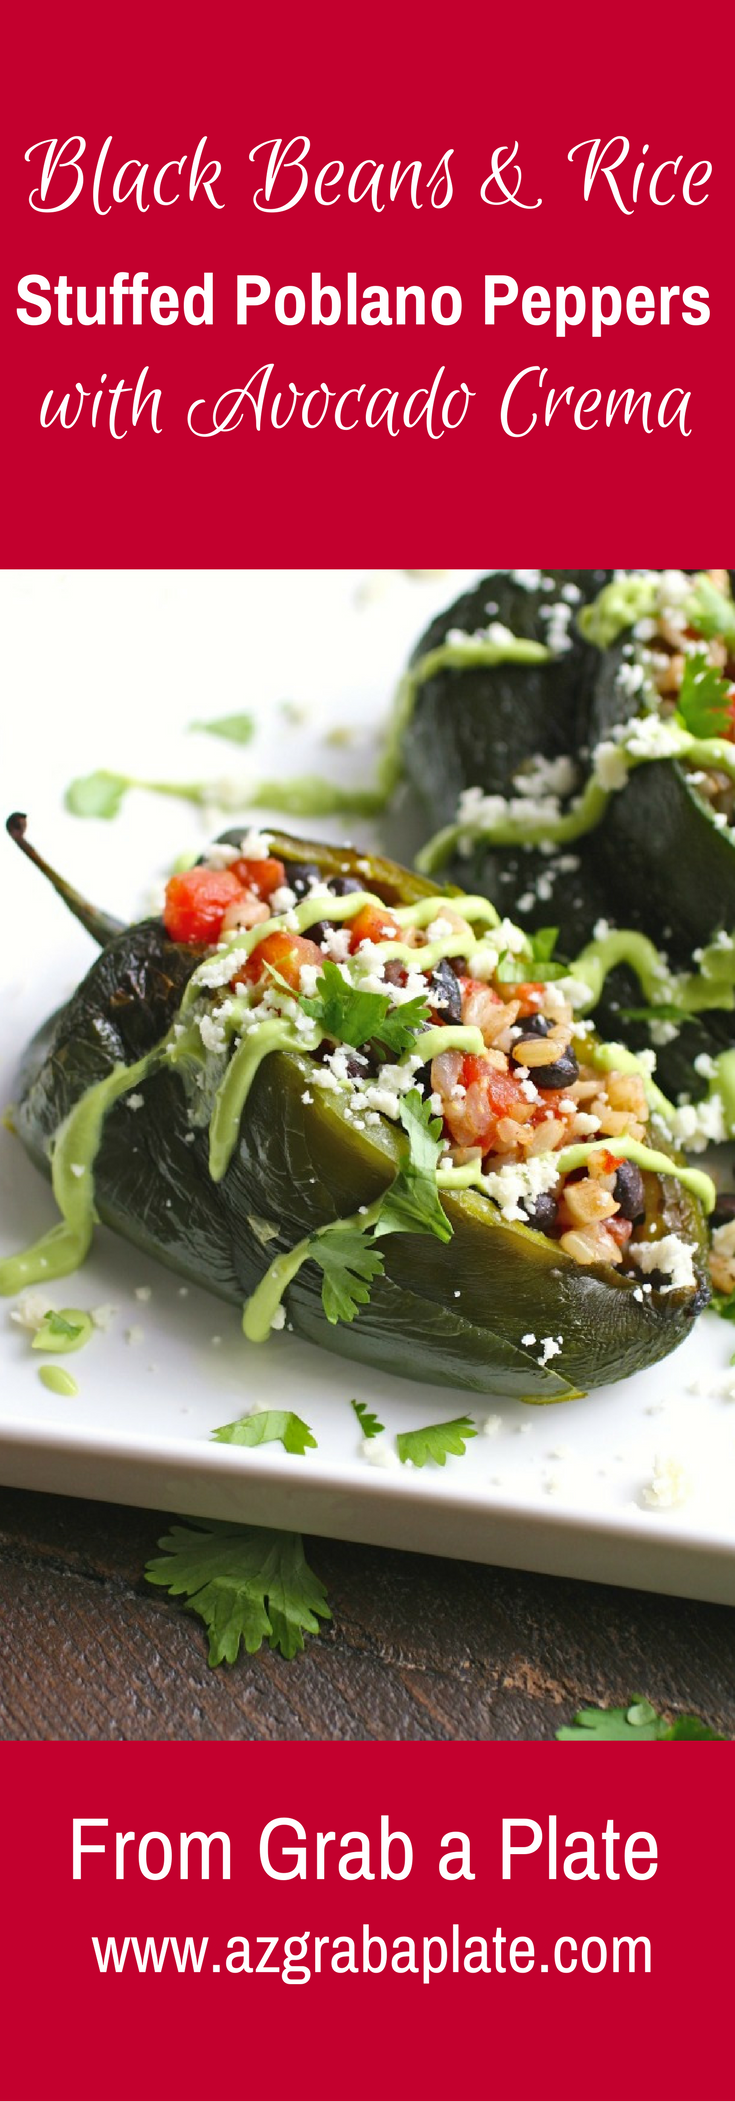 Black Beans and Rice Stuffed Poblano Peppers with Avocado Cream make a wonderful, comforting meal!